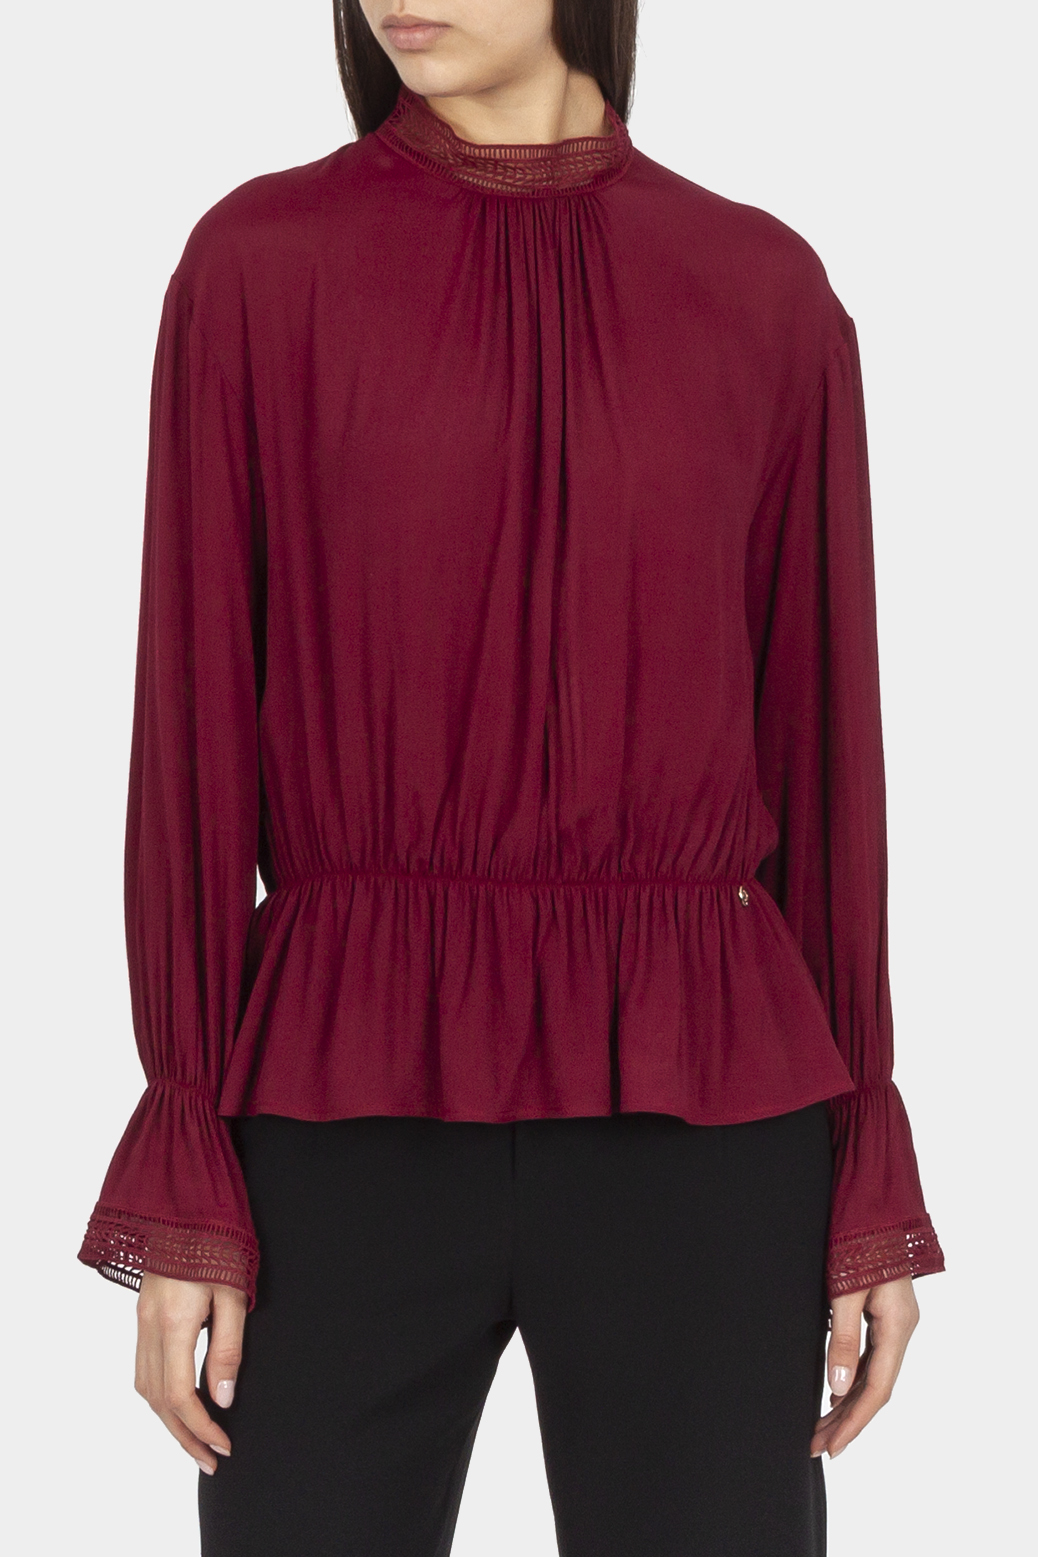 Blouse with lace details